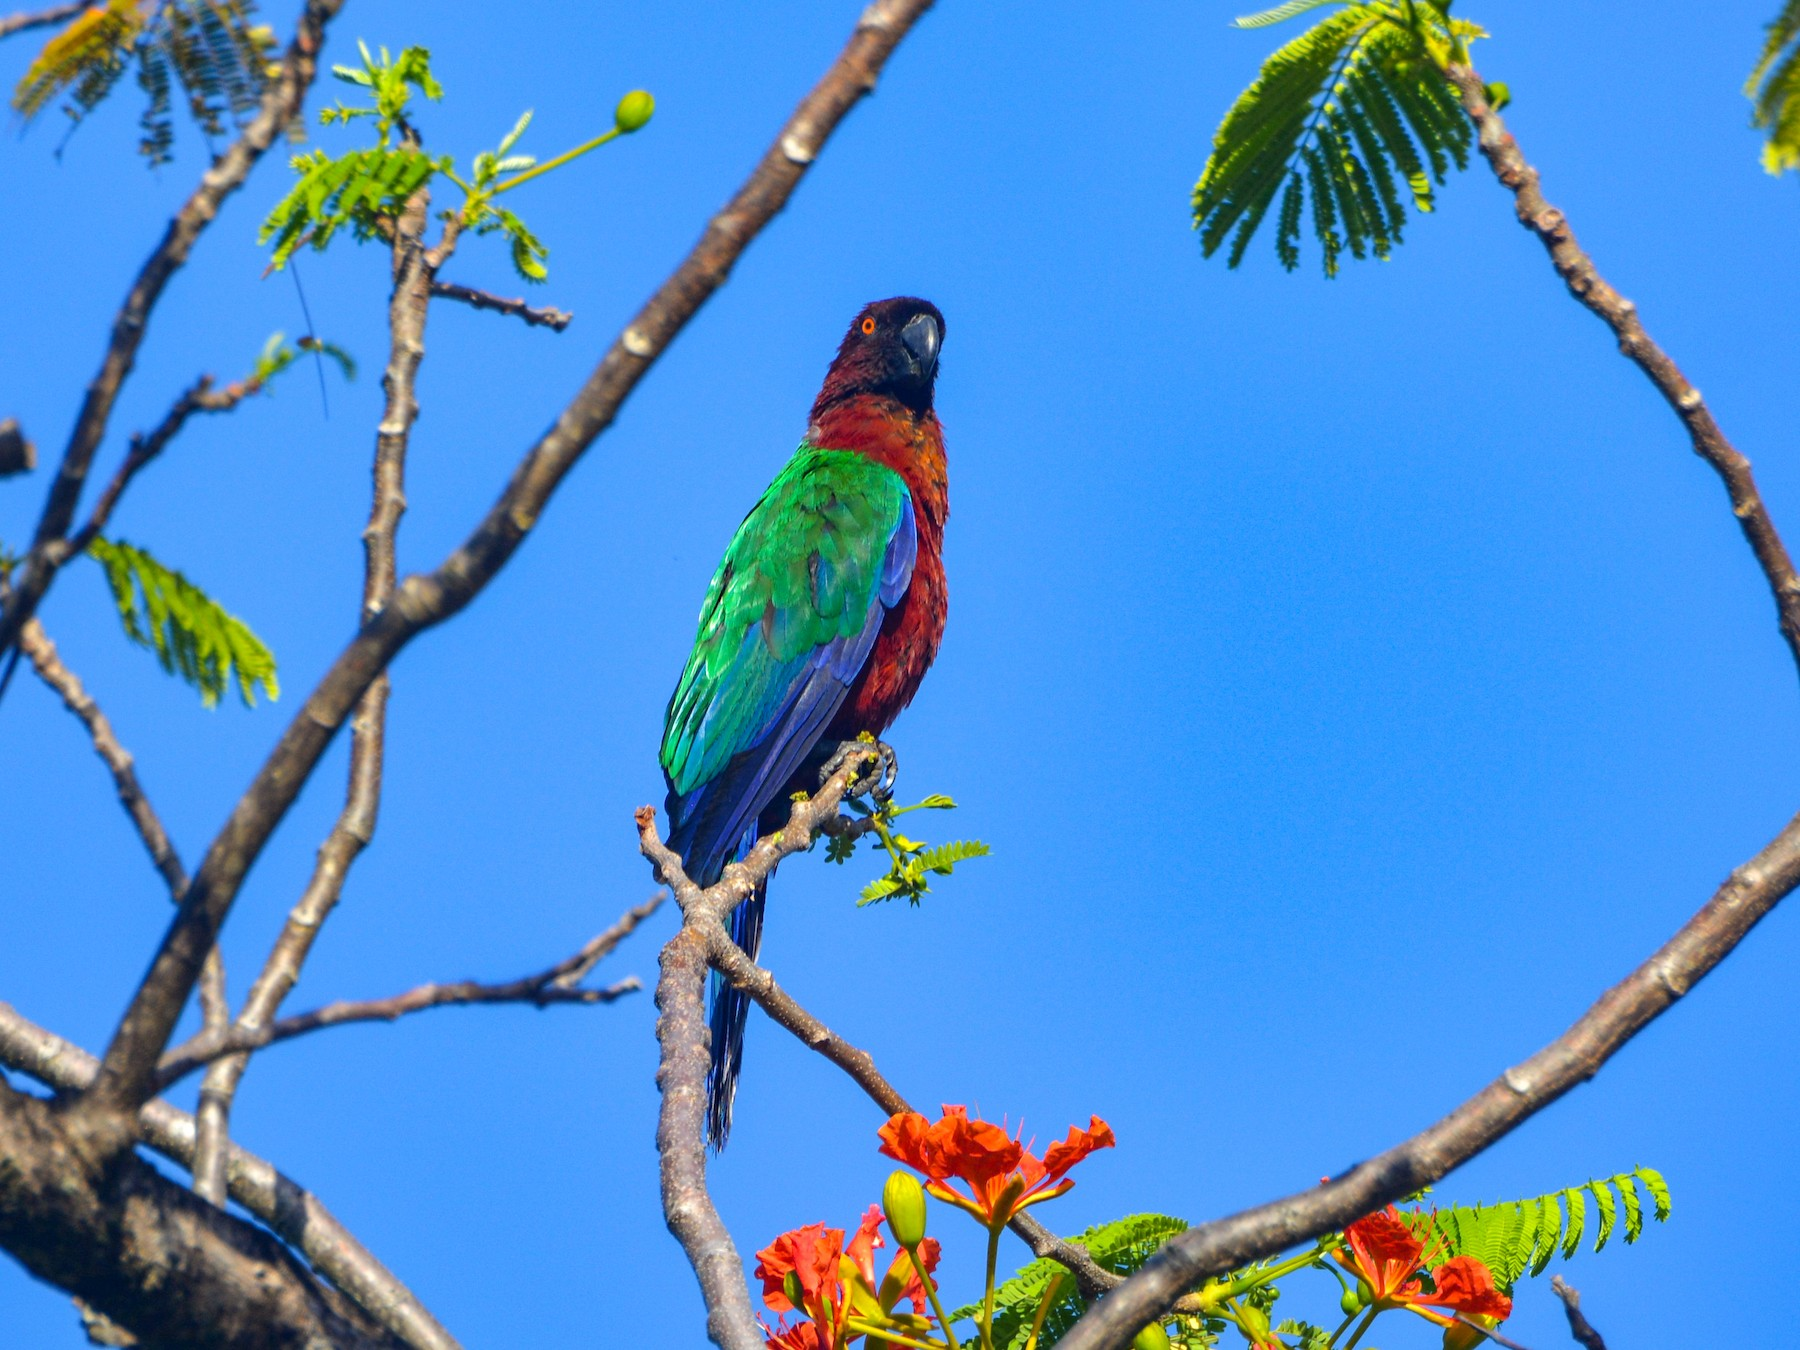 Red Shining-Parrot - Mary McGreal